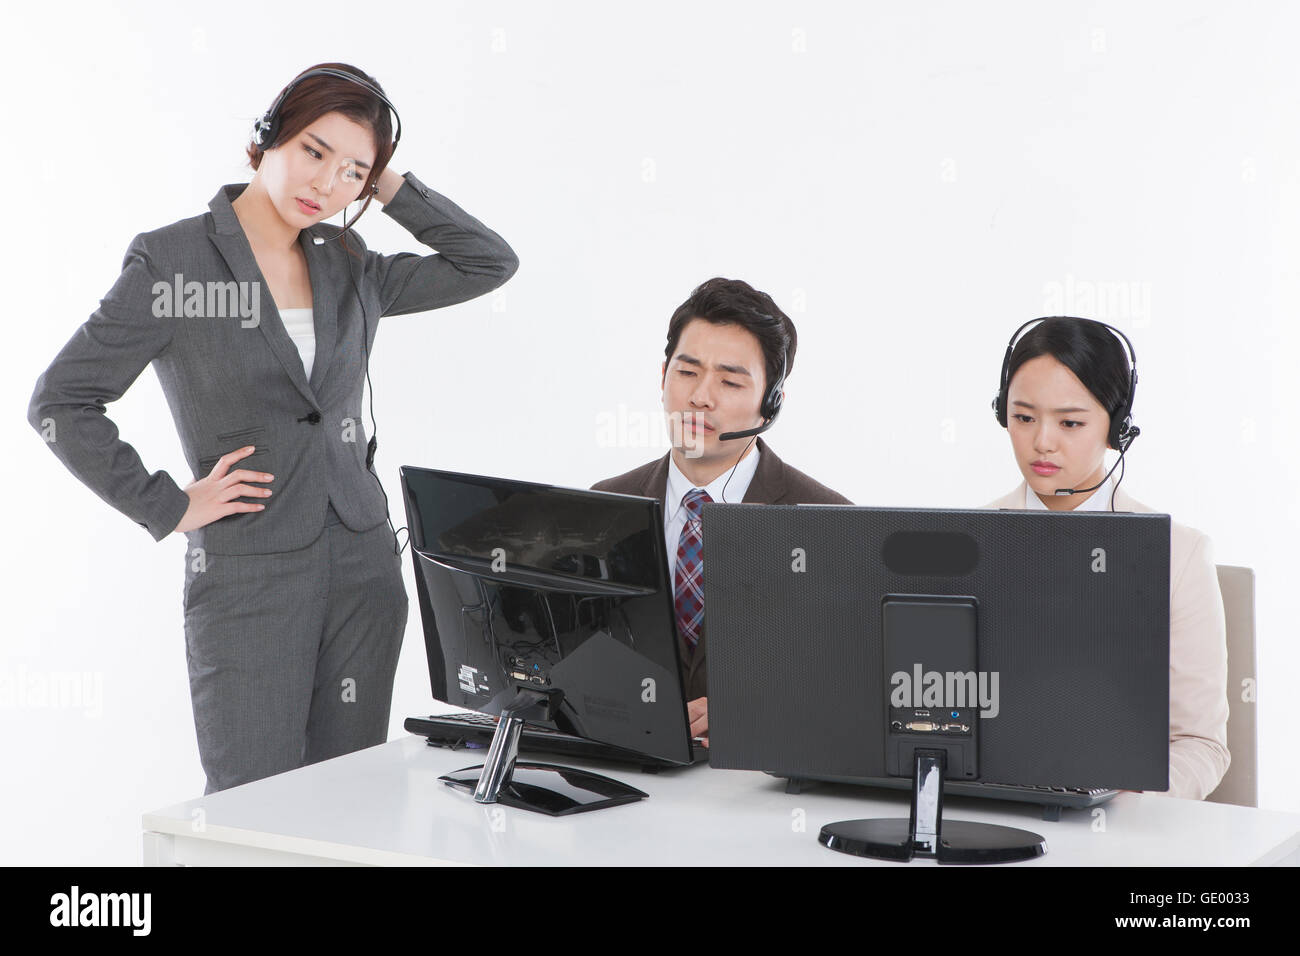 Three stressful business people at work - Stock Image